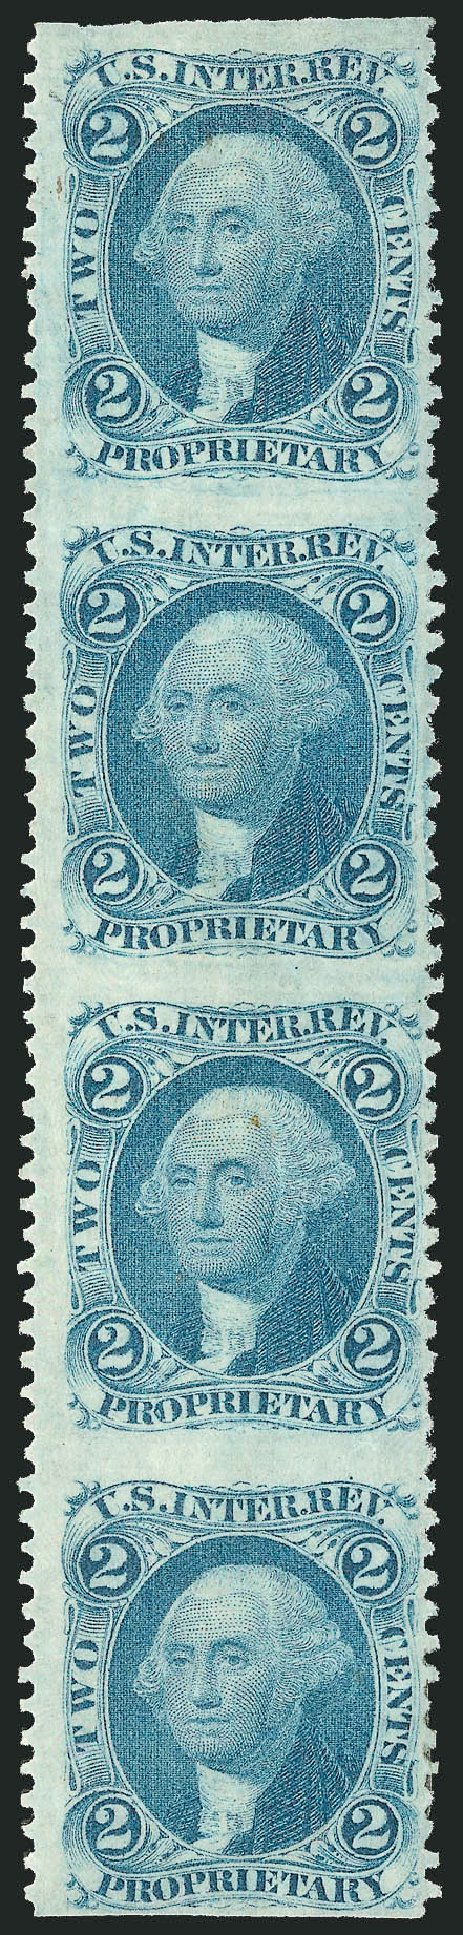 US Stamp Values Scott Catalog # R13 - 1862 2c Revenue Proprietary. Robert Siegel Auction Galleries, Dec 2014, Sale 1089, Lot 391